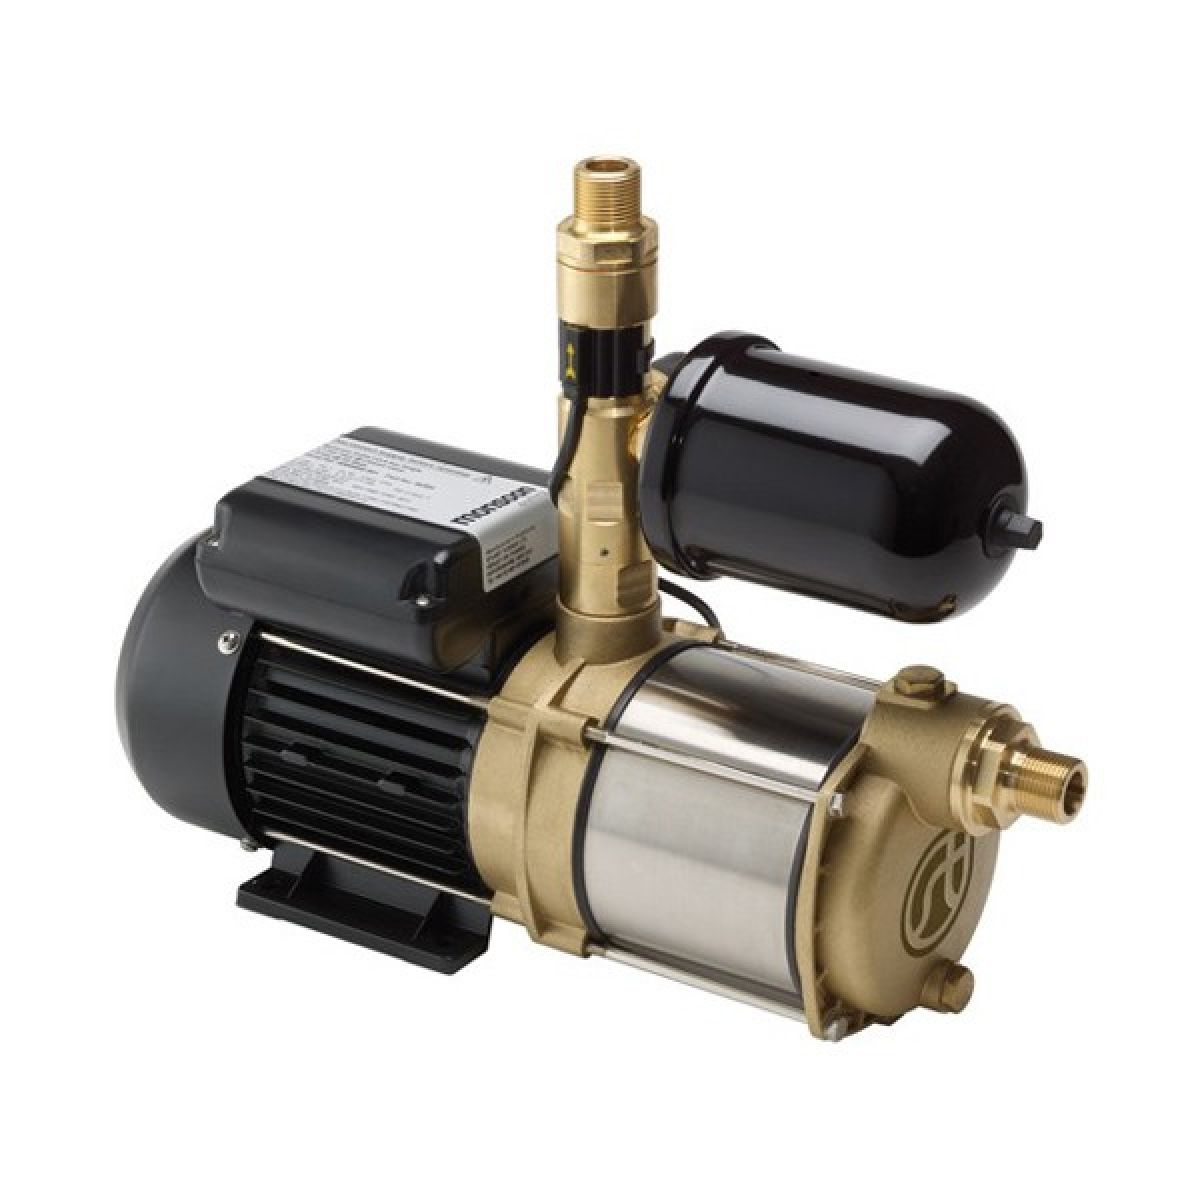 Stuart Turner 46593 CH Boostamatic 4-30 B Universal Single 2.6 Bar Pump